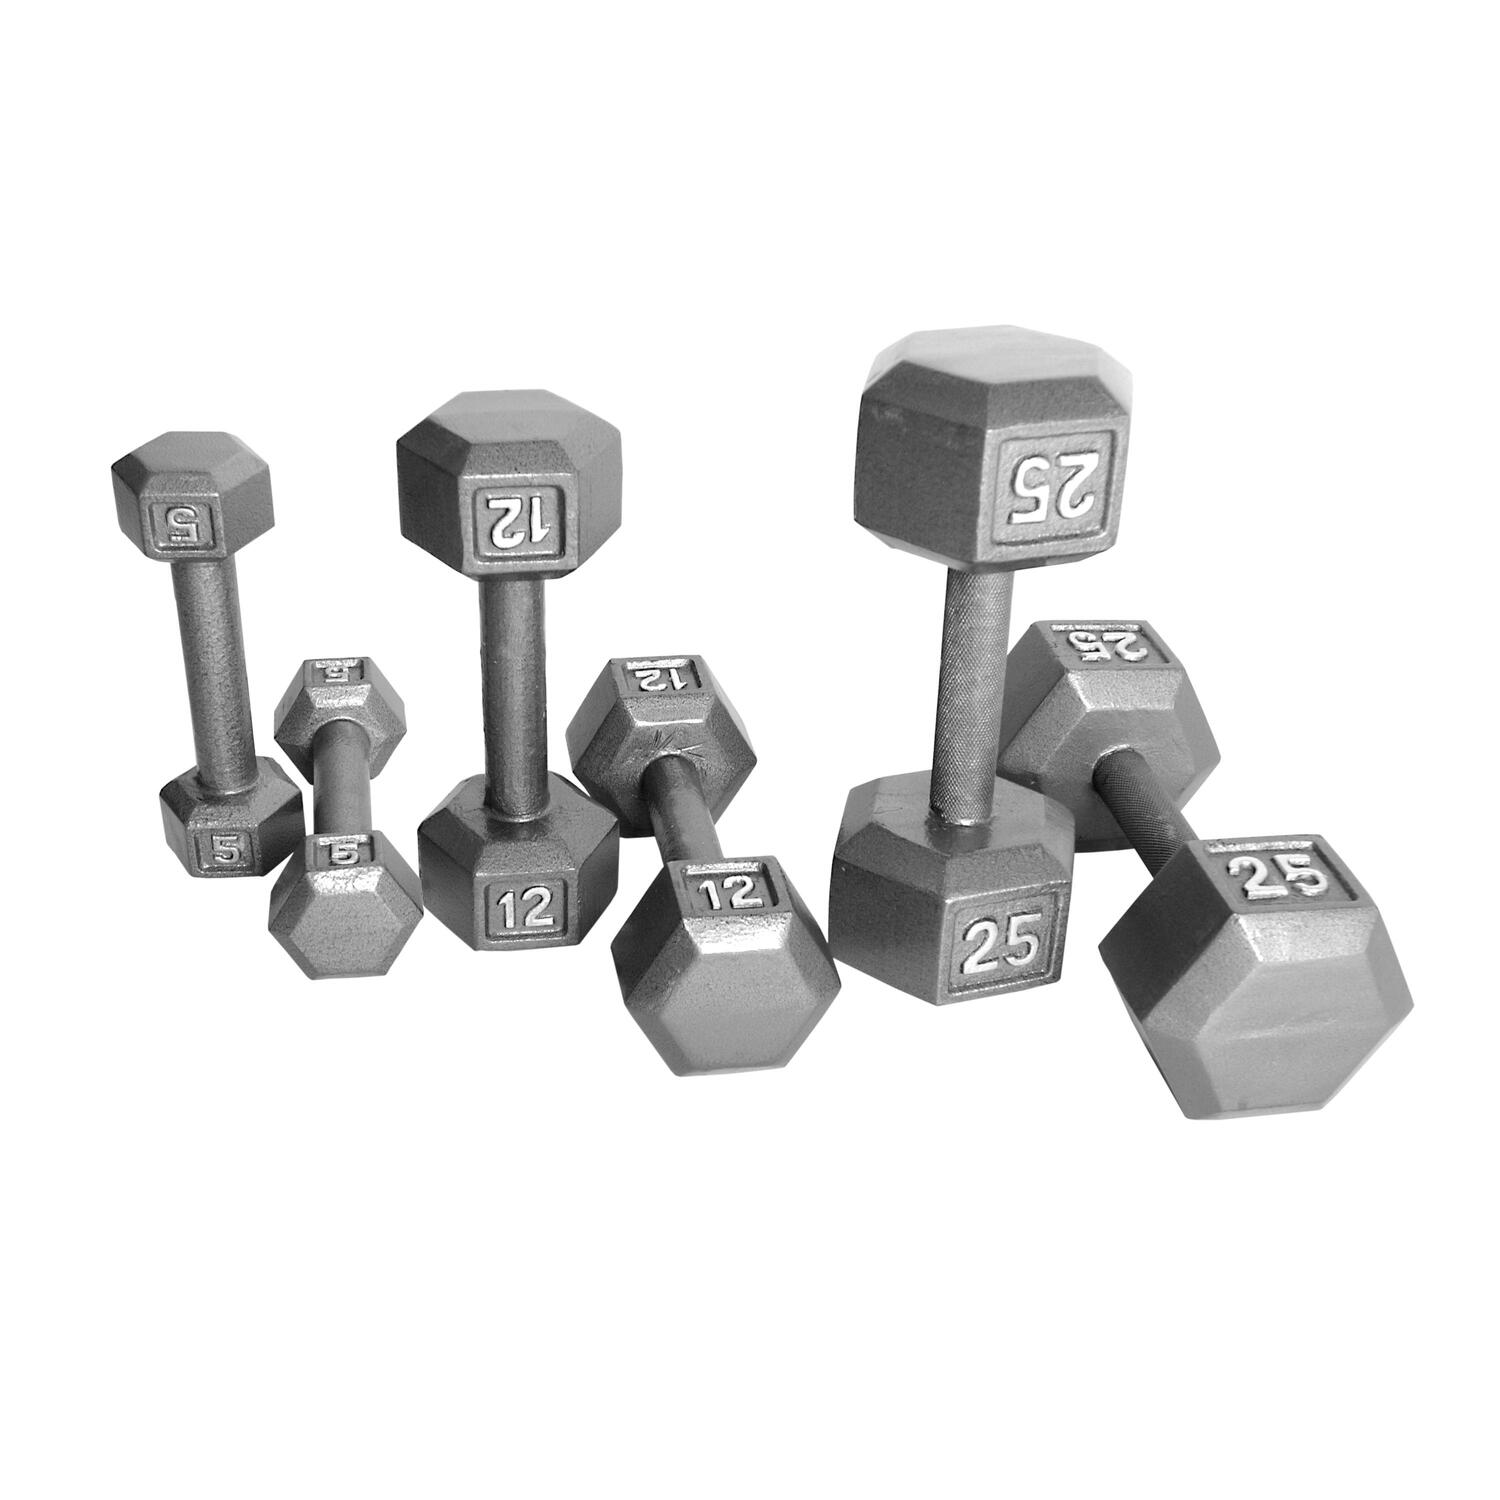 Small Dumbbell Set: Cap Barbell CAP Hex Dumbbell Set Sizes 5-50 Lbs By OJ